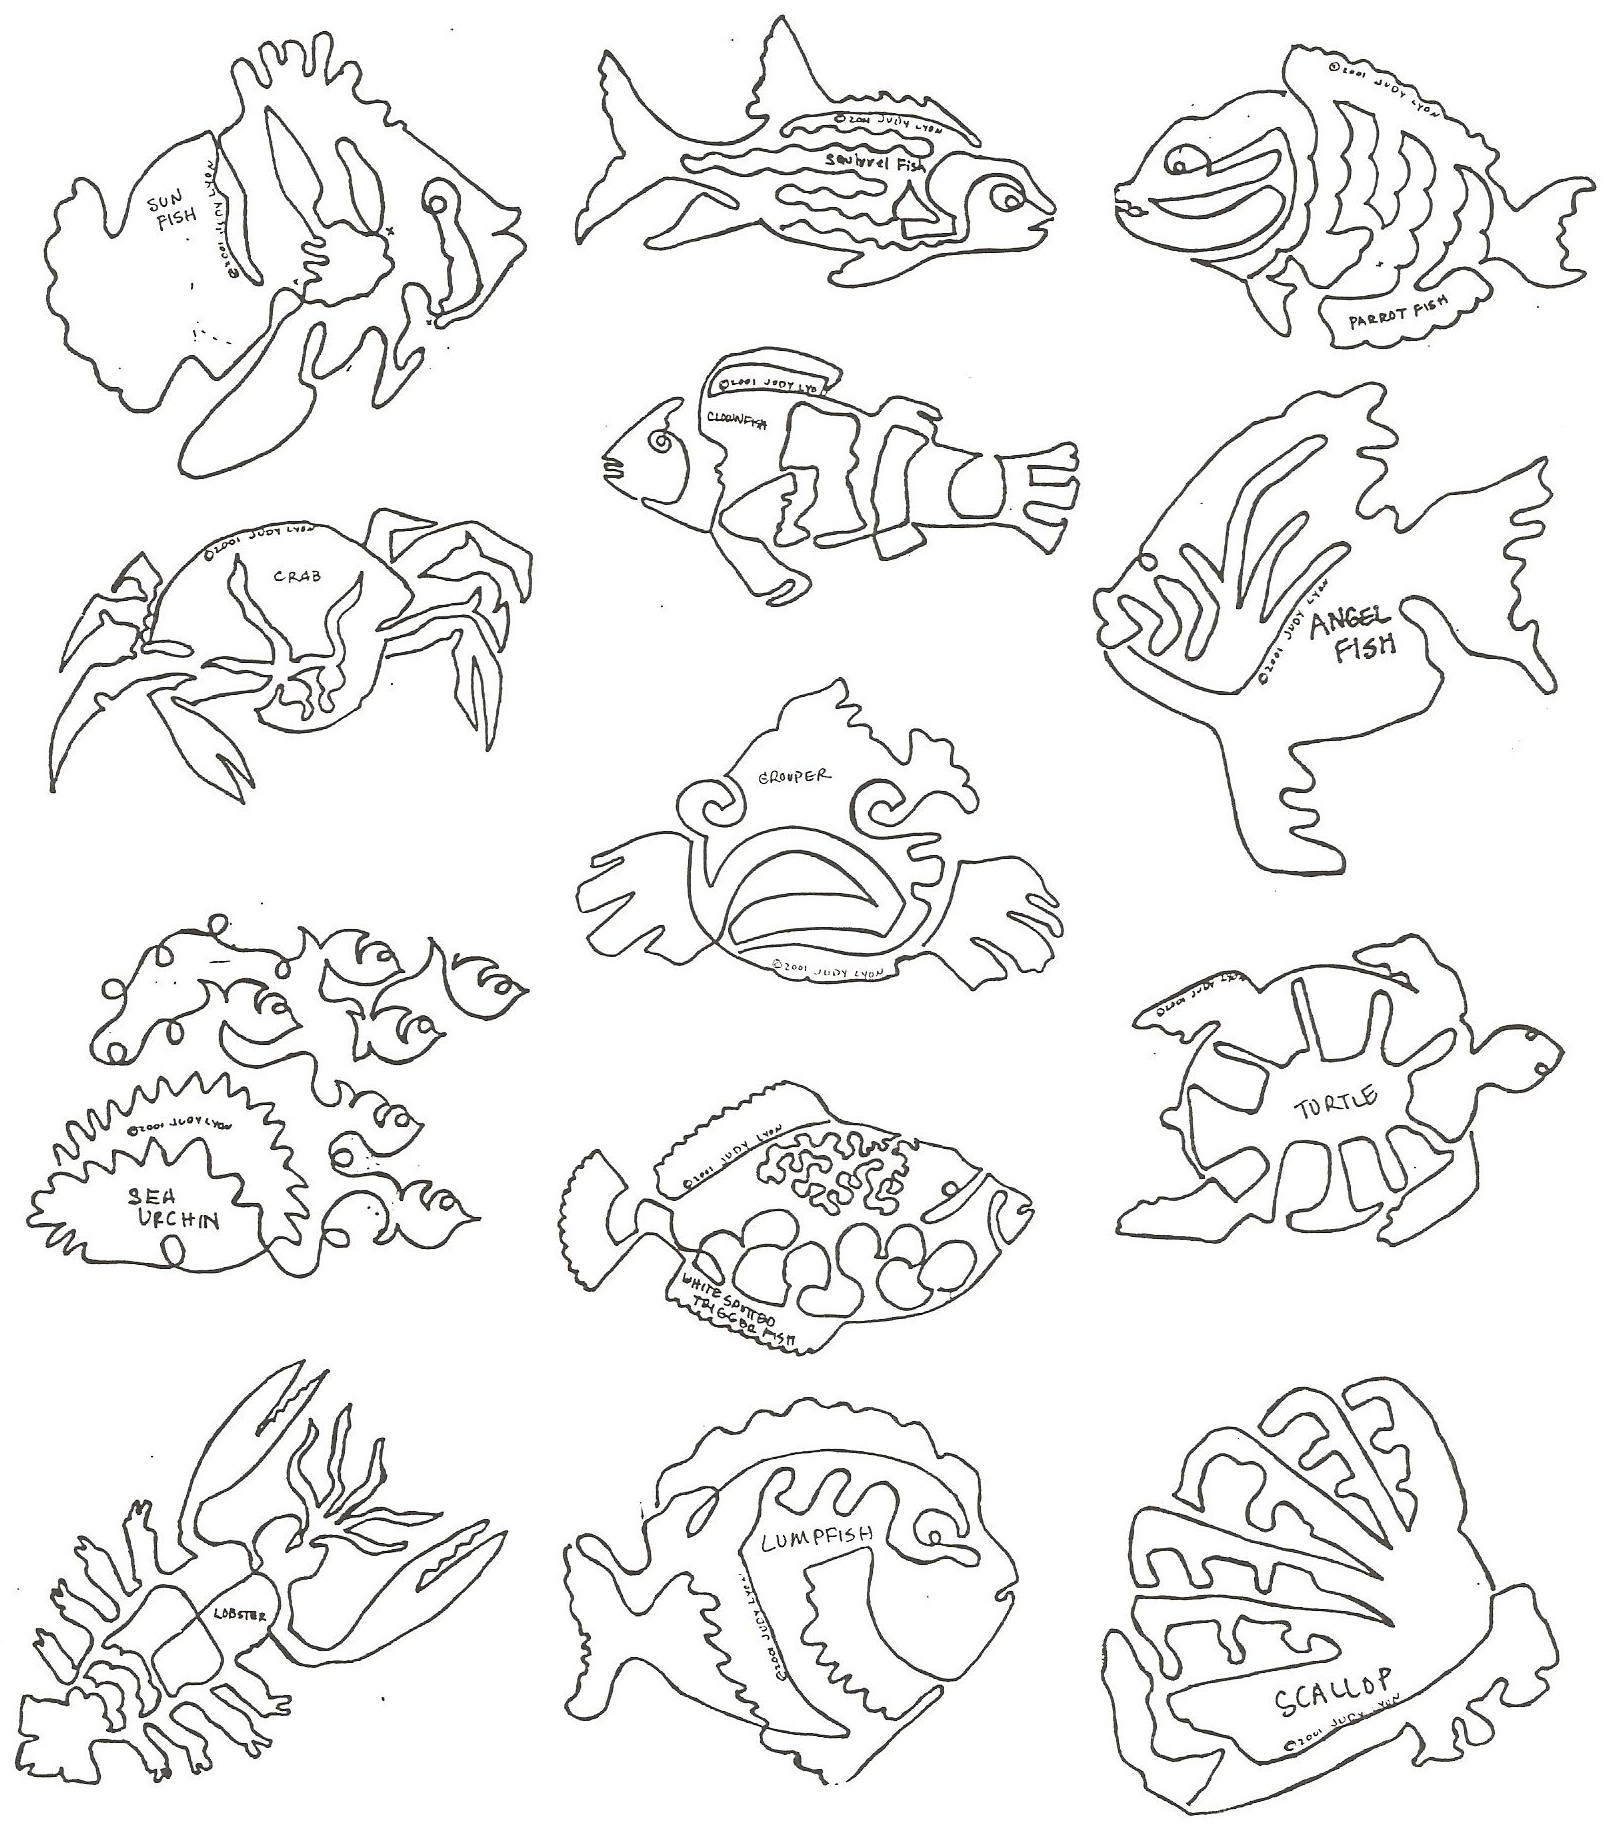 Fishy Business Block 2 - FBB2 - Collection of 12